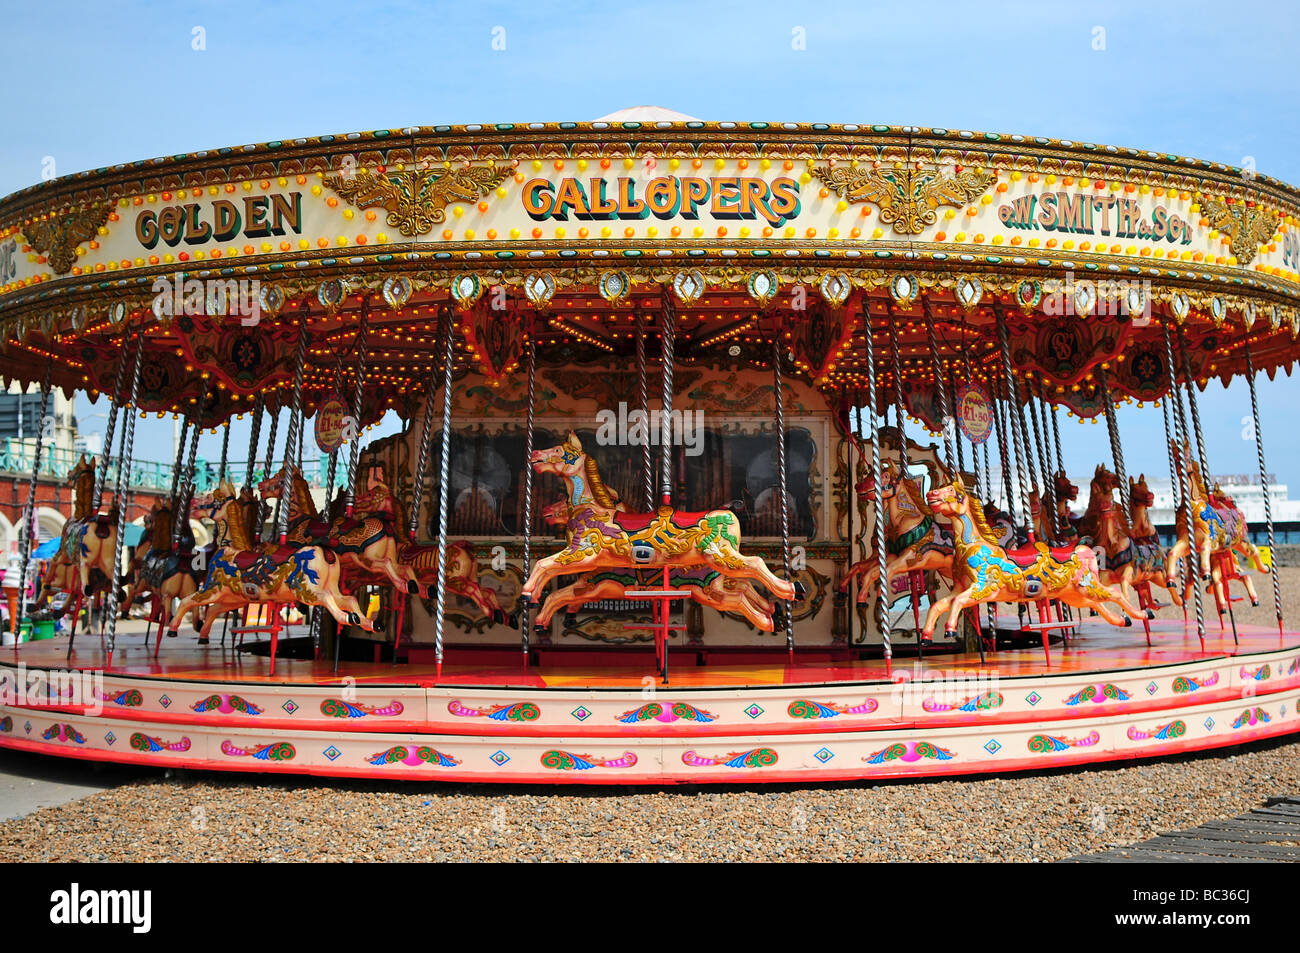 Carousel on Brighton beach, Brighton, England - Stock Image